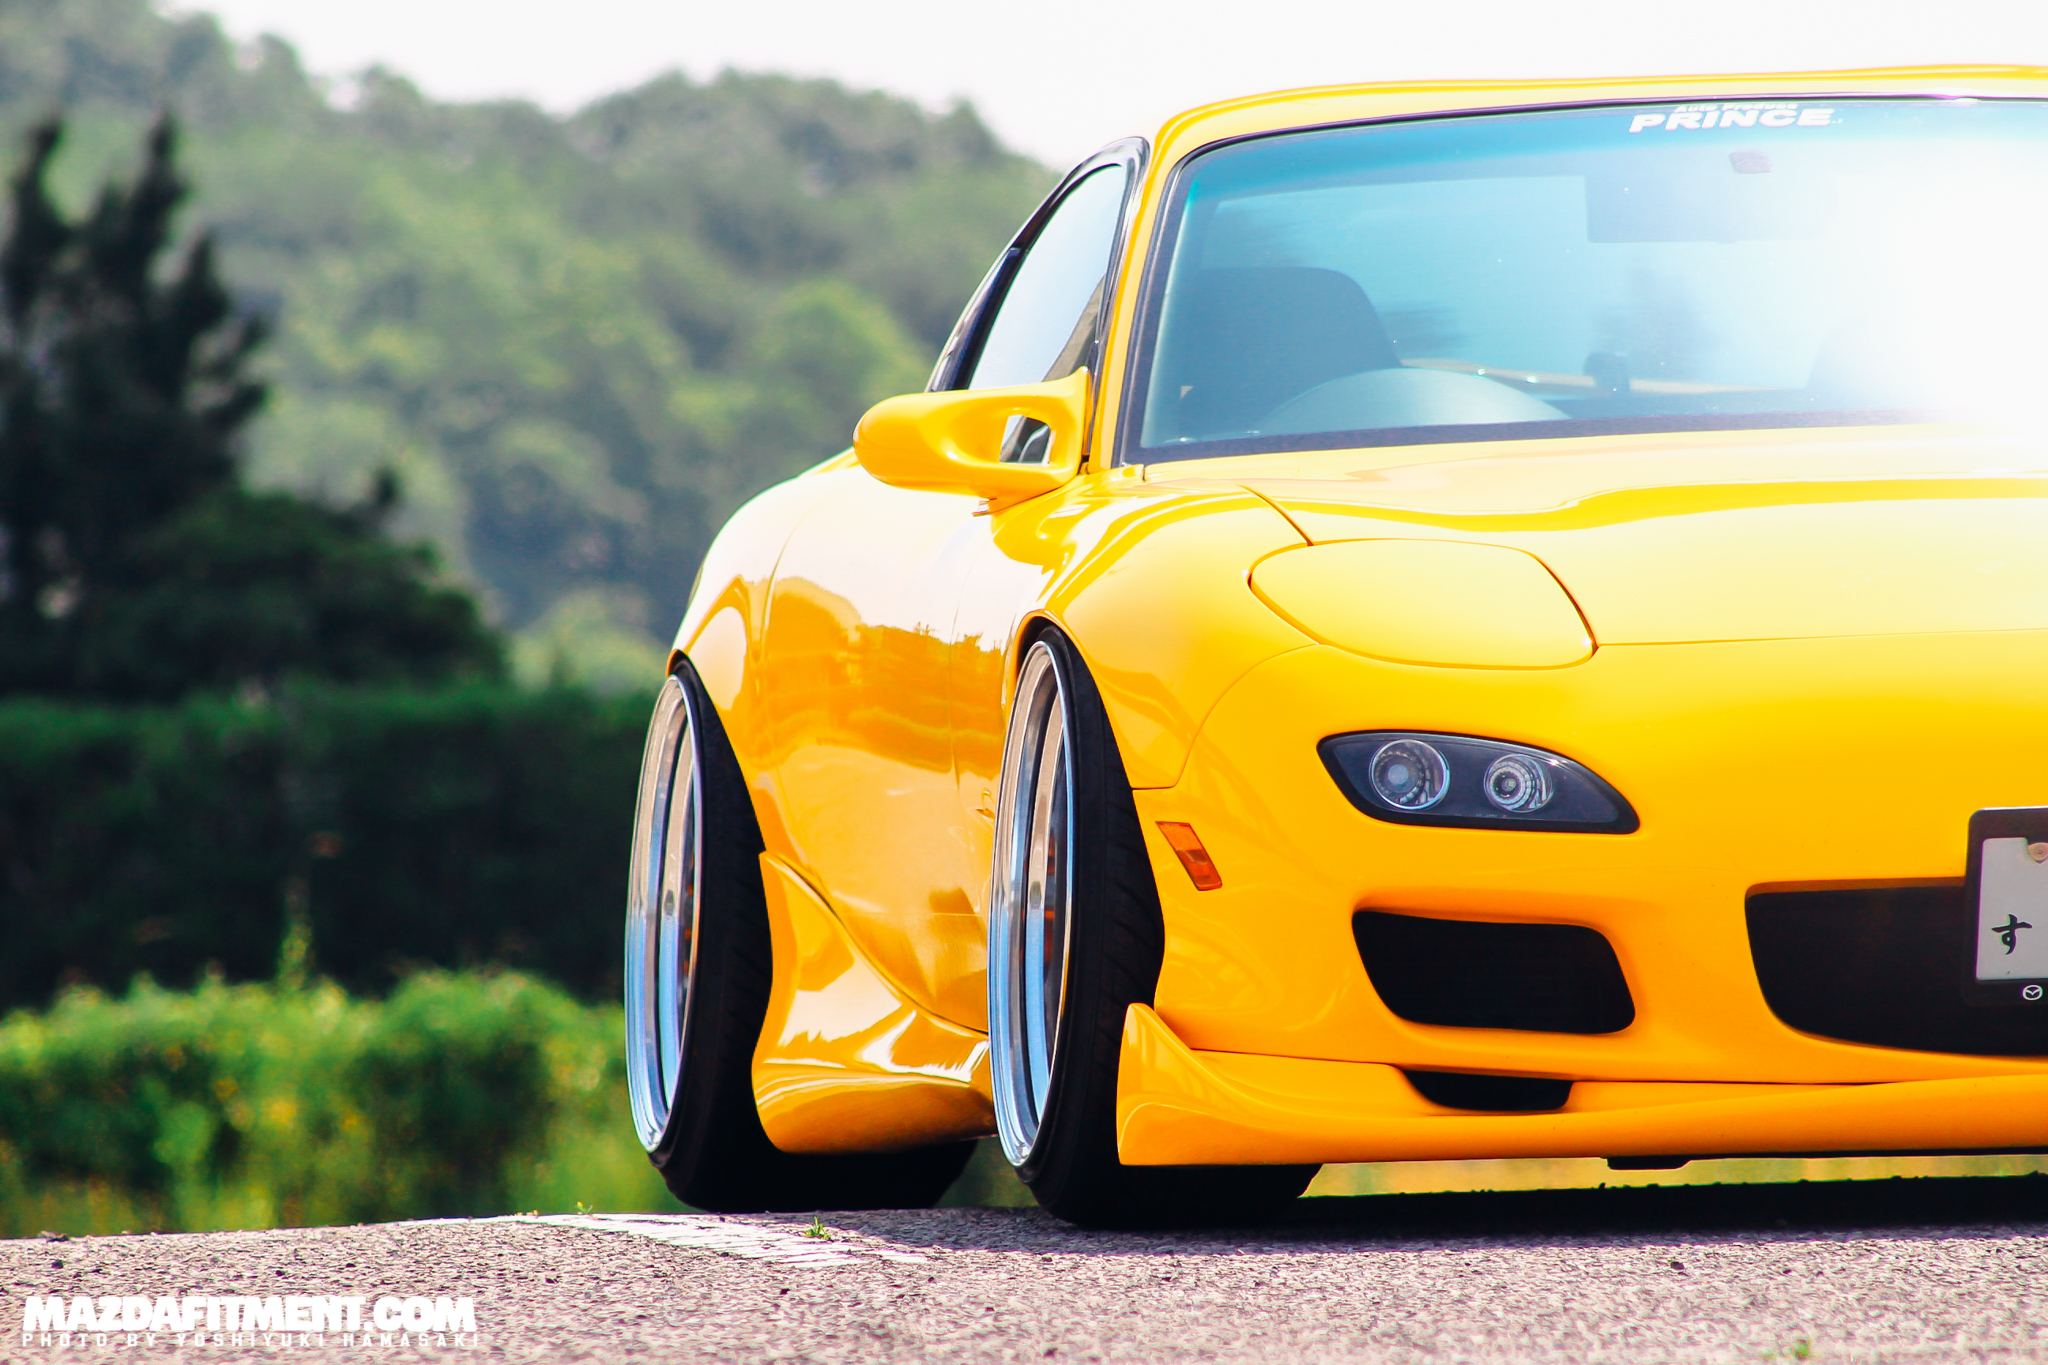 Img as well Img besides D Broadway Rearview Mirror Rmmirror likewise D Drag Wing Wing likewise . on mazda rx 7